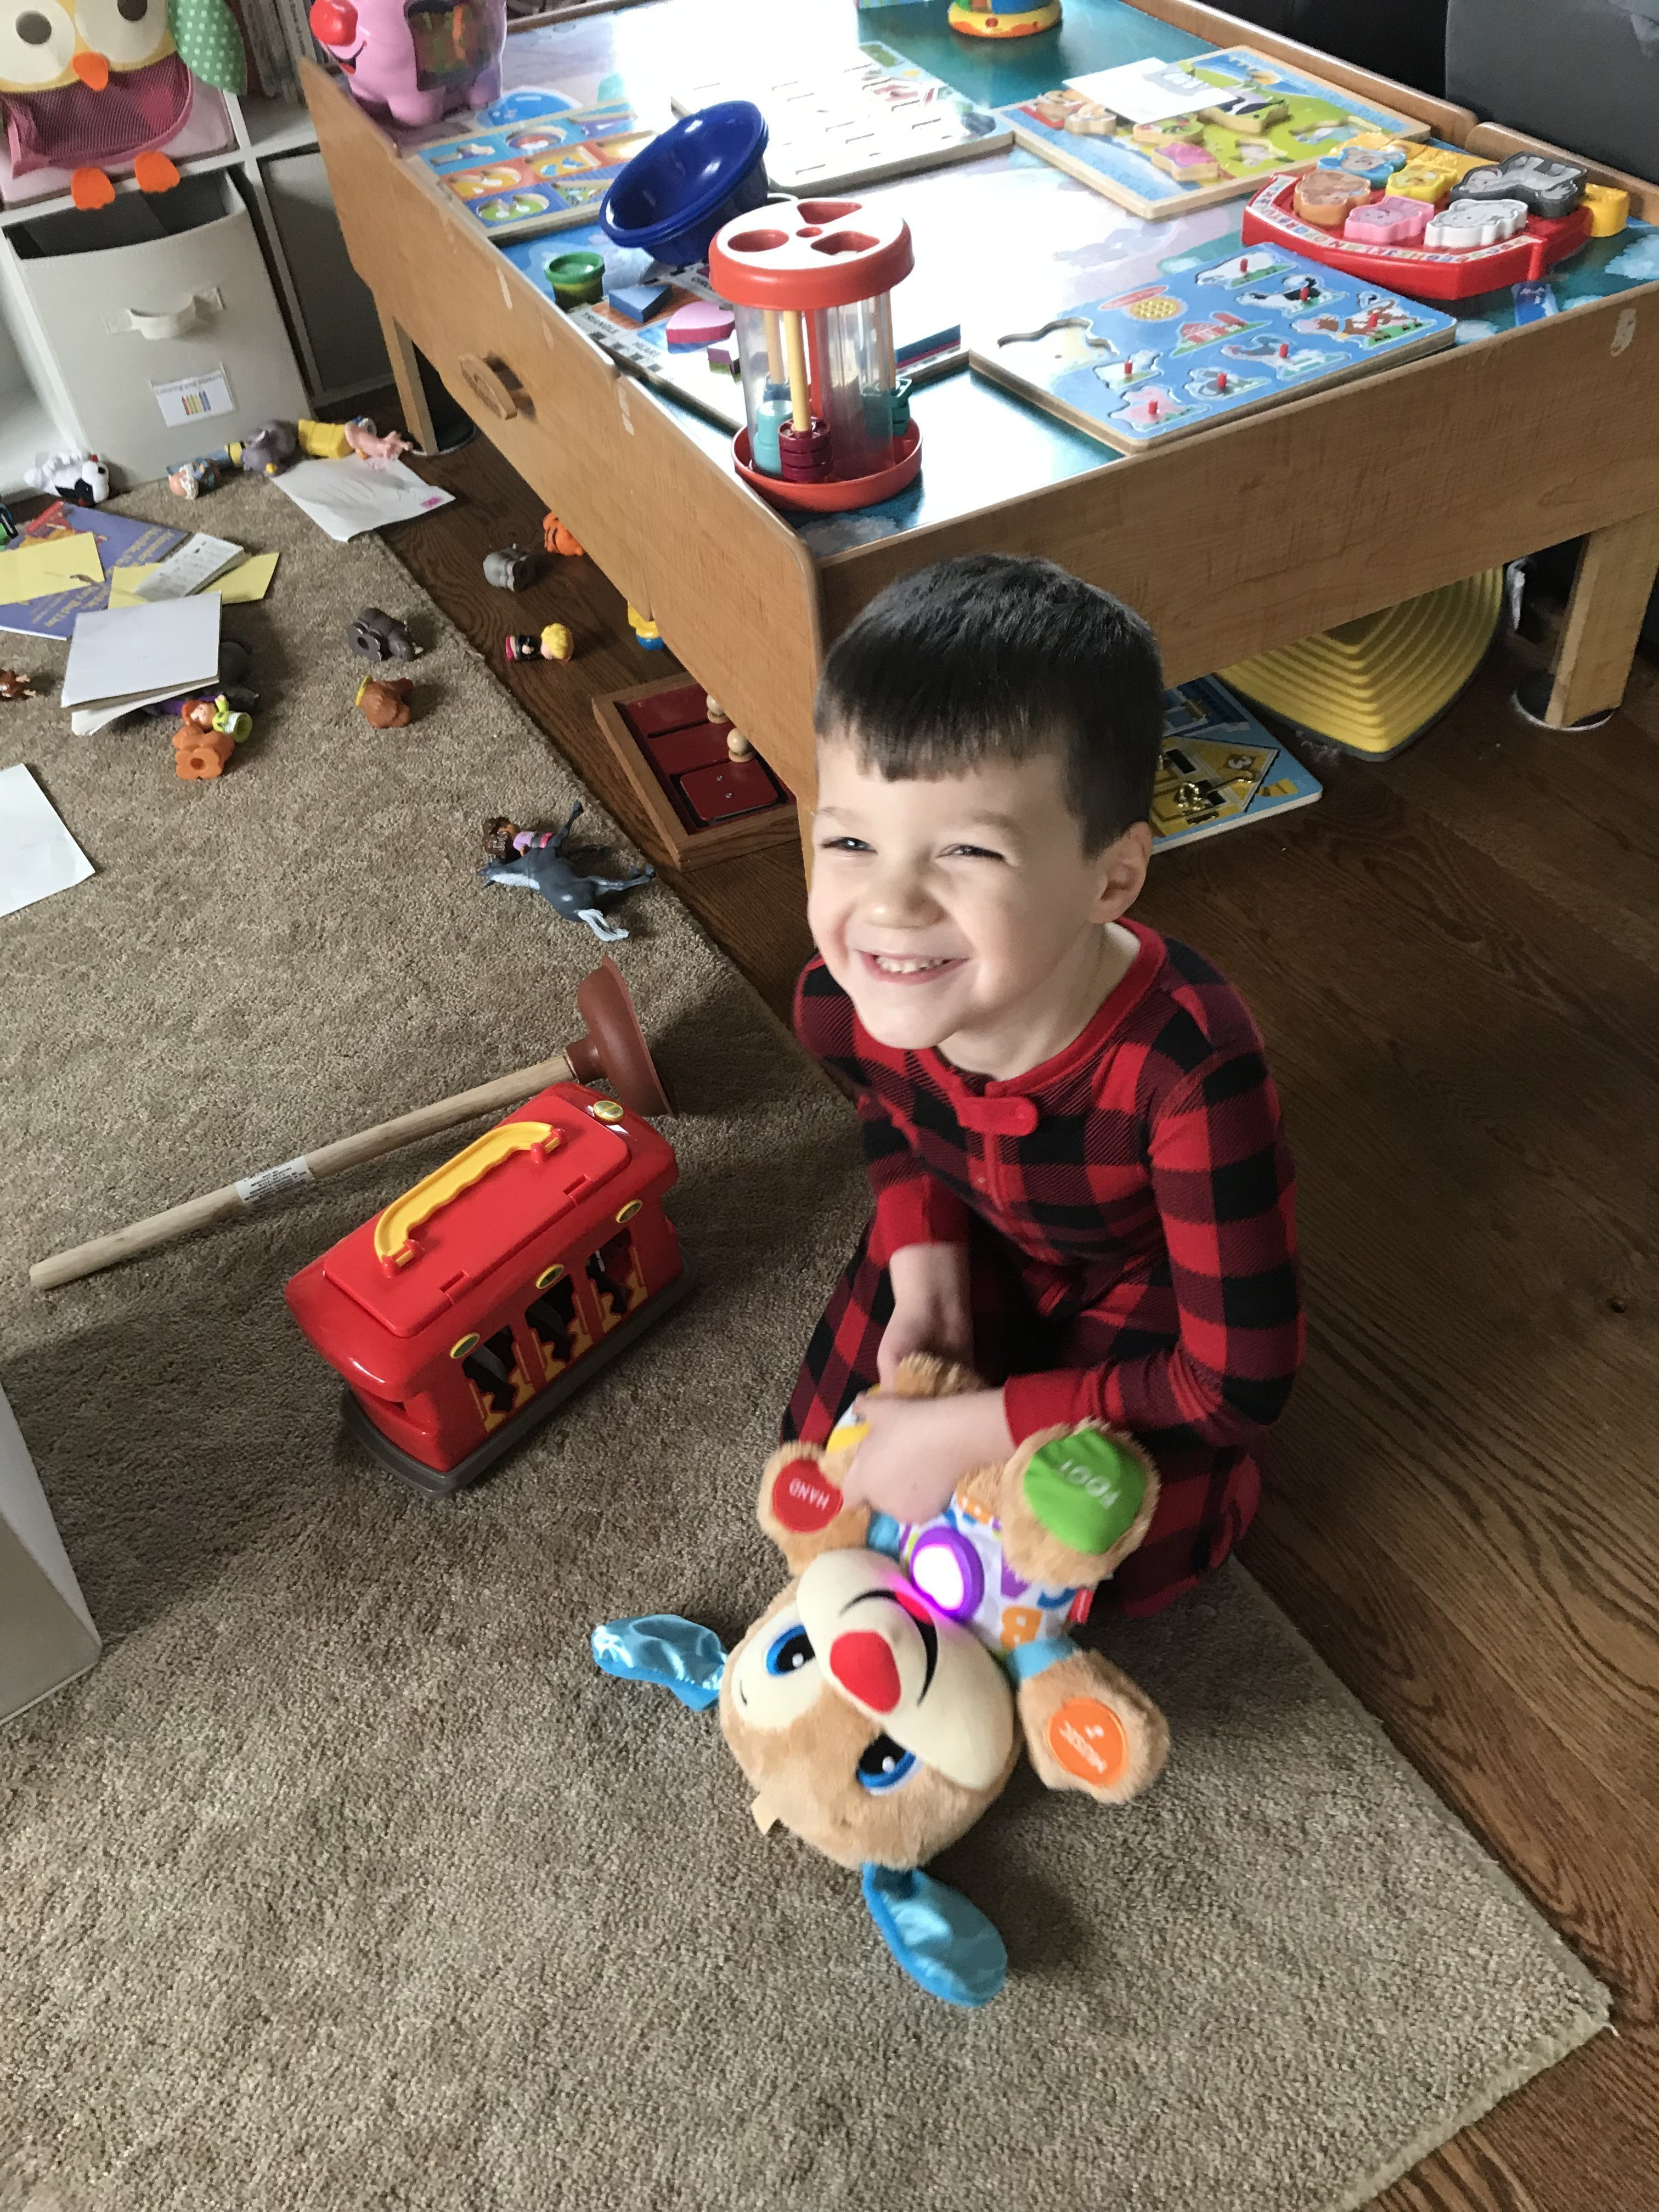 sad young boy shouting with toys scattered around, child in